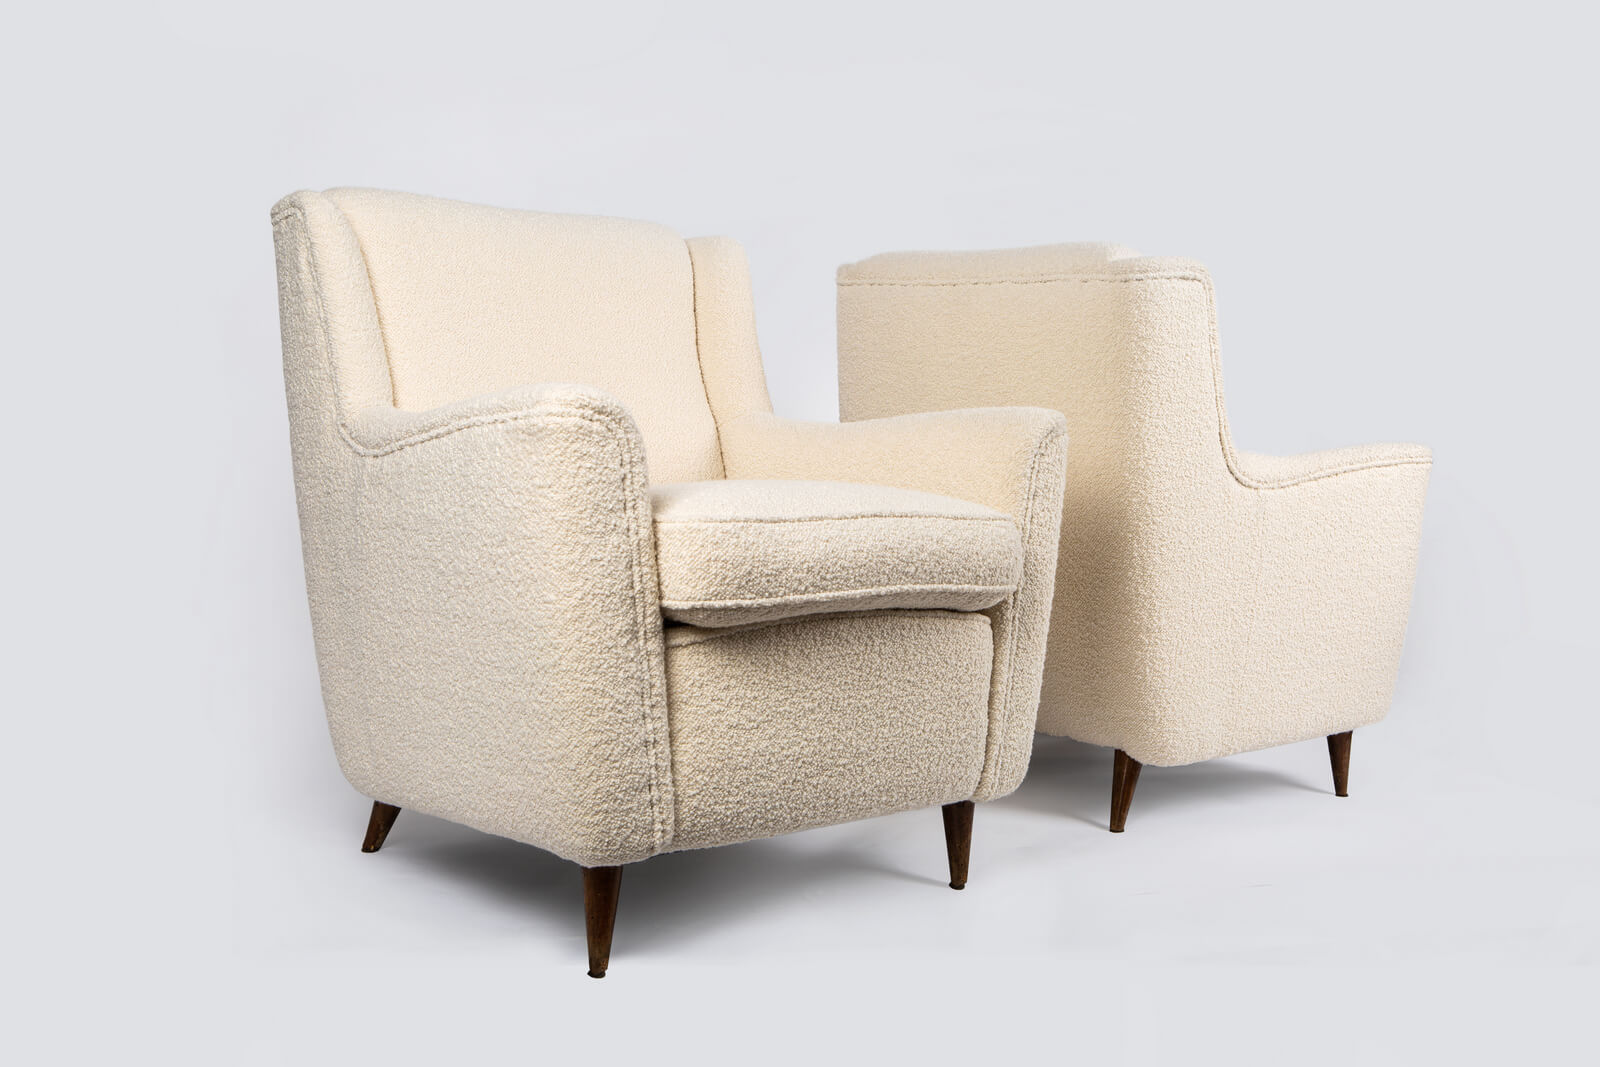 Armchair by Gio Ponti for sale